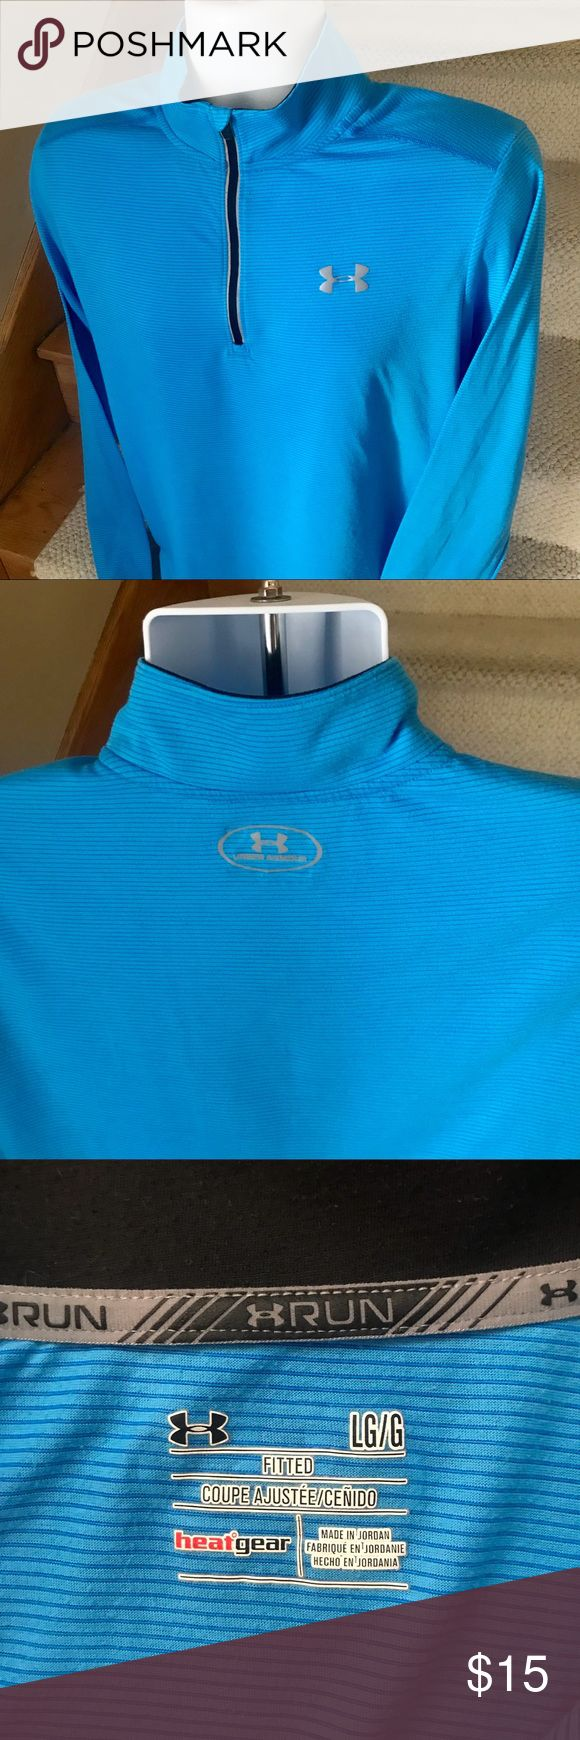 Under Armour Heat Gear zip athletic running shirt Authentic men's Under Armour Fitted 1/4 zip athletic running shirt that is sized large.  Under Armour logo on the chest and top of the back.  Made out of Heat Gear wicking fabric.  Gently used condition. Under Armour Shirts Tees - Long Sleeve #runningshirt